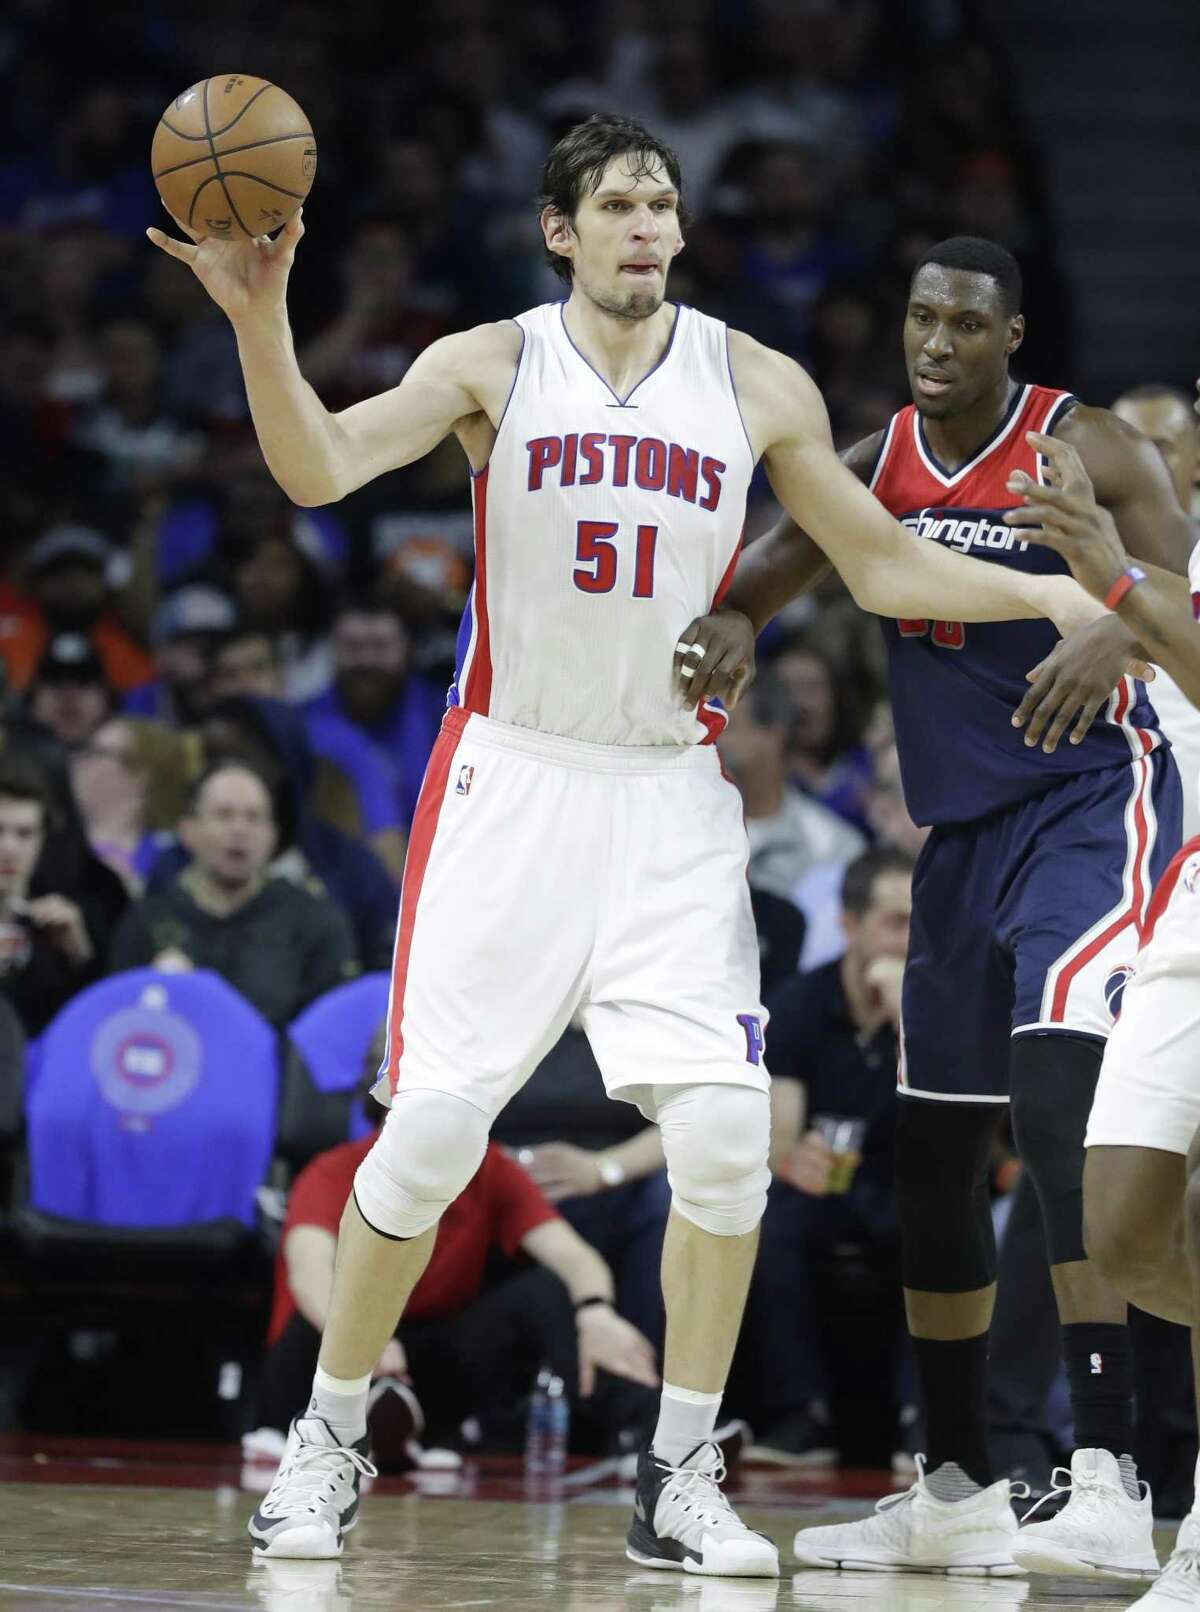 Detroit center Boban Marjanovic passes the ball during a game against the Washington Wizards on April 10 in Auburn Hills, Mich.